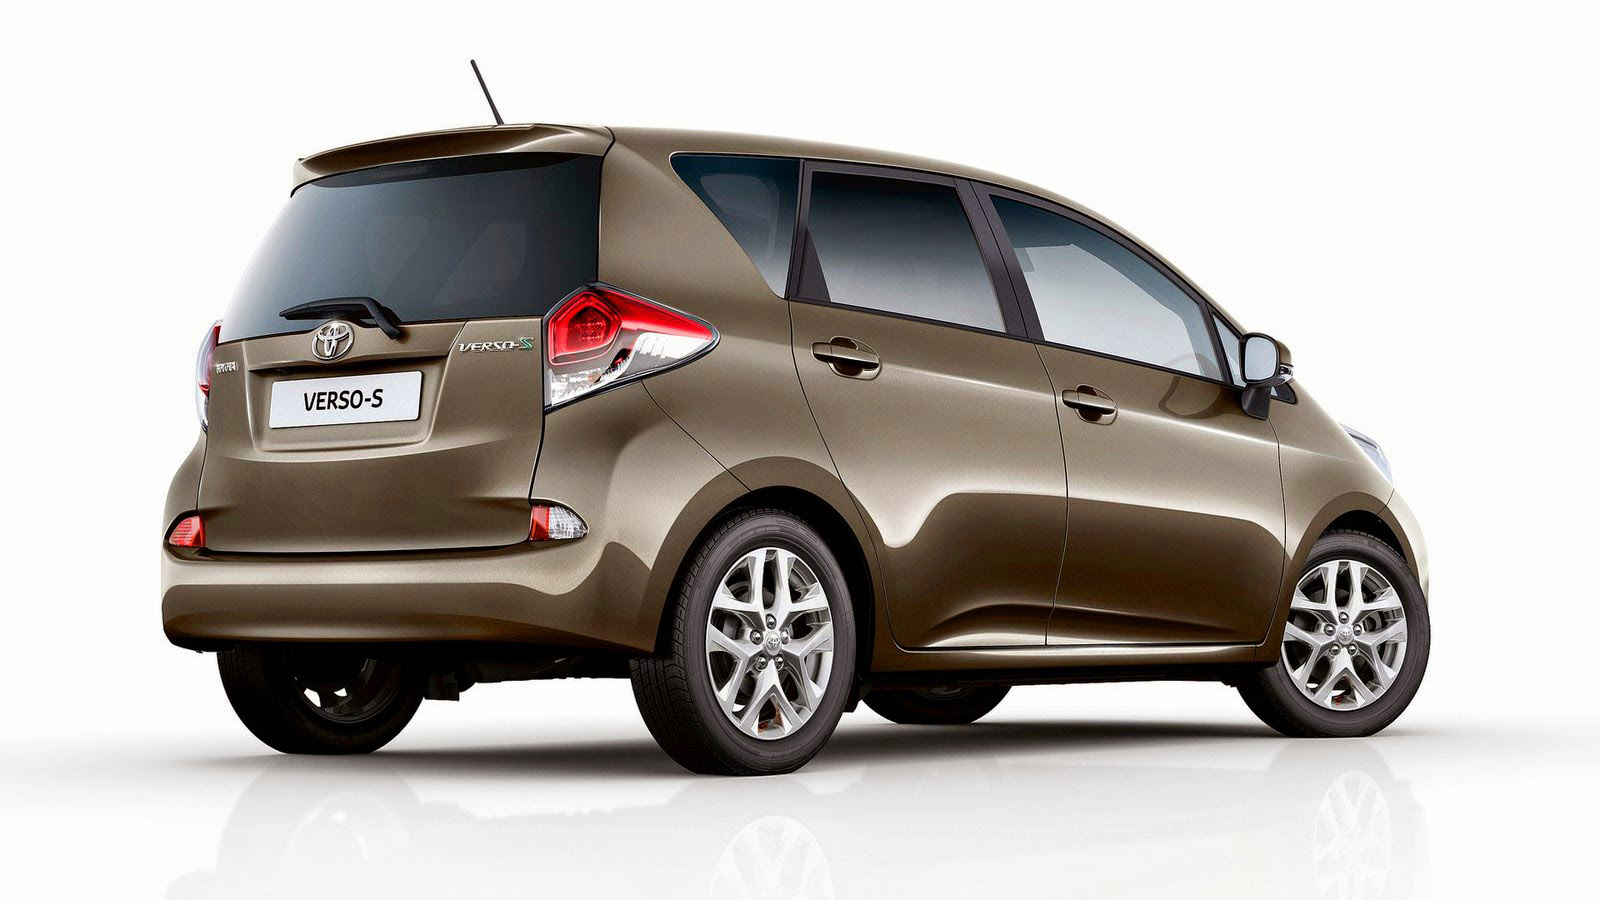 toyota verso s mpv gets refreshed for 2015. Black Bedroom Furniture Sets. Home Design Ideas